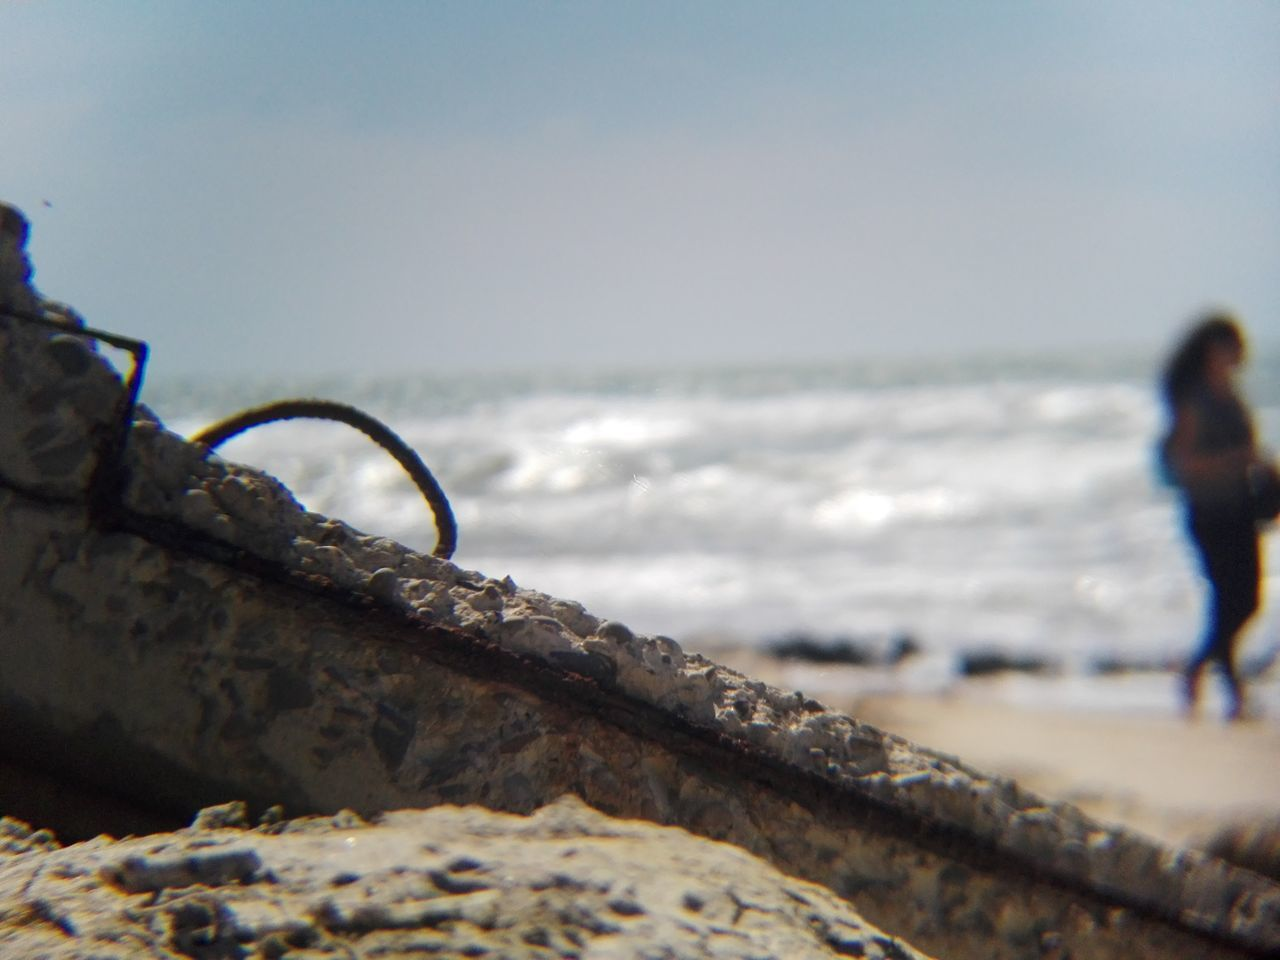 Horizon Over Water Beach Restos Marinos Contaminated Nature